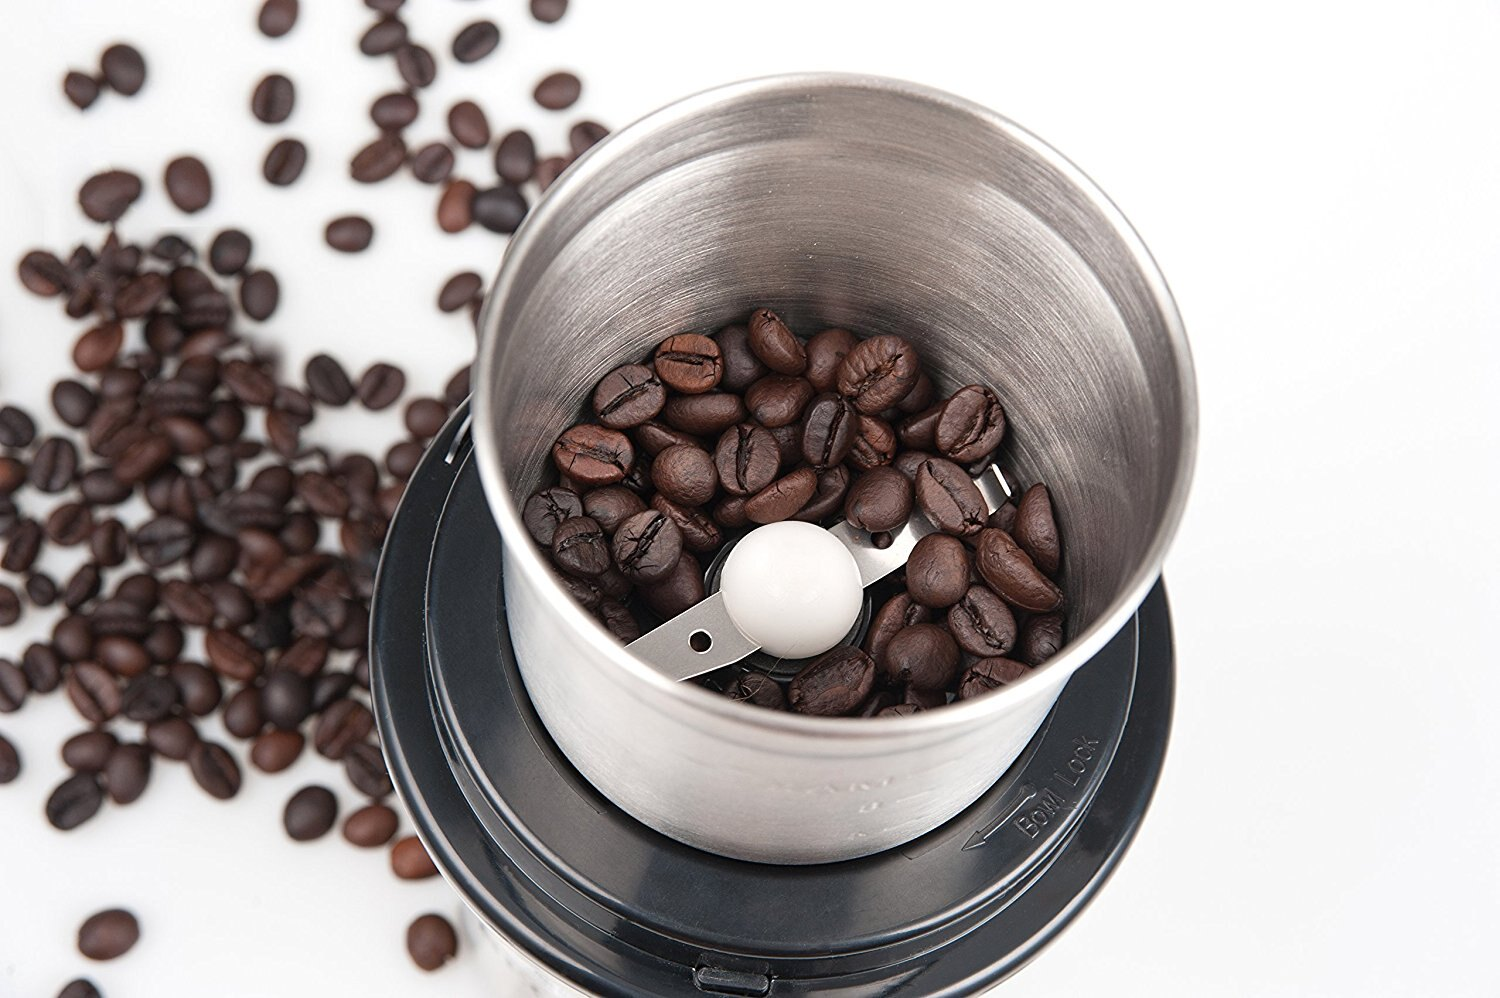 Secura Electric Coffee and Spice Grinder with Stainless Steel Blades Removable Bowl 6